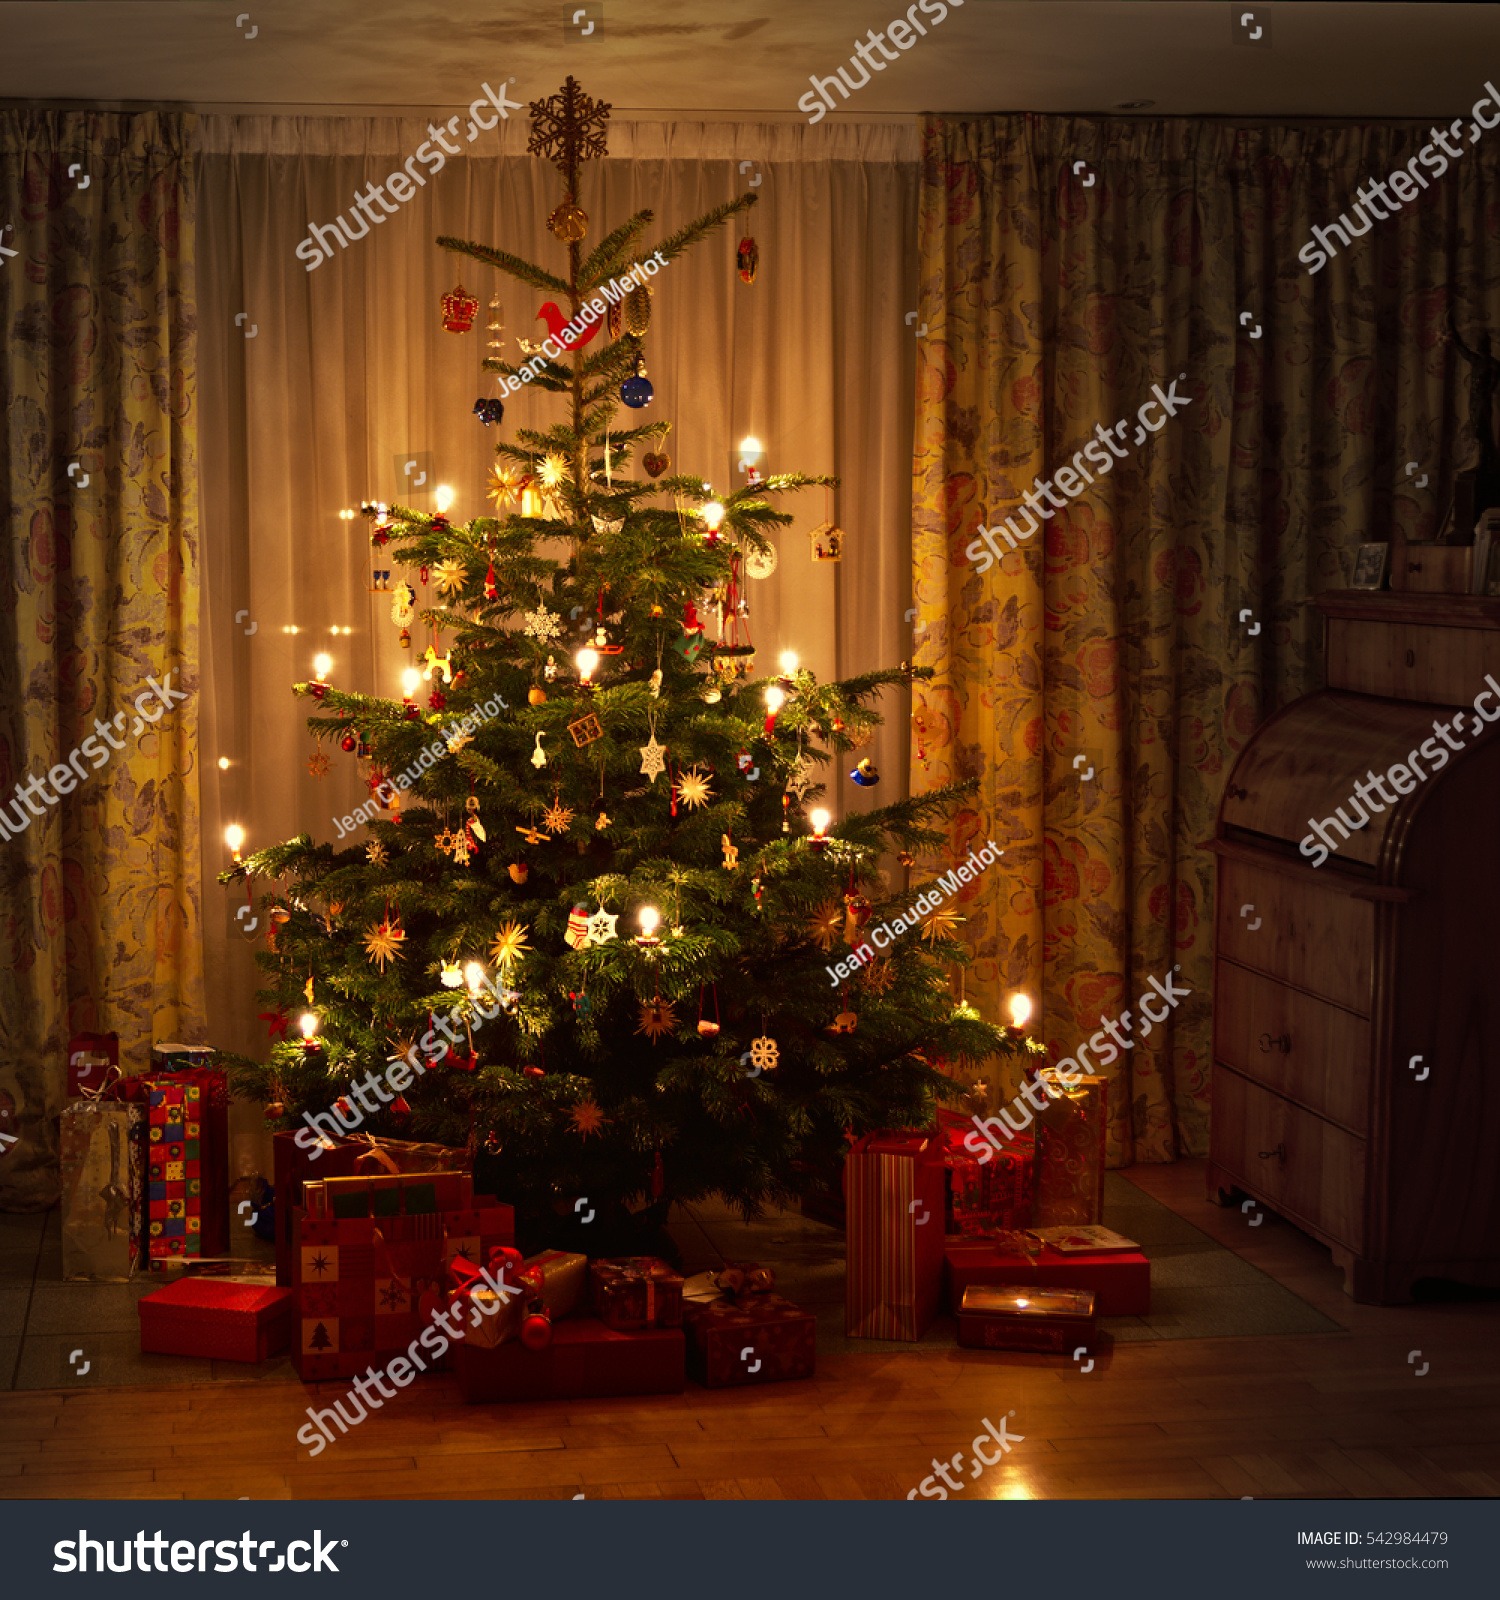 Real Weihnachtsbaum.Christmas Tree Real Candles Weihnachtsbaum Mit Stock Photo